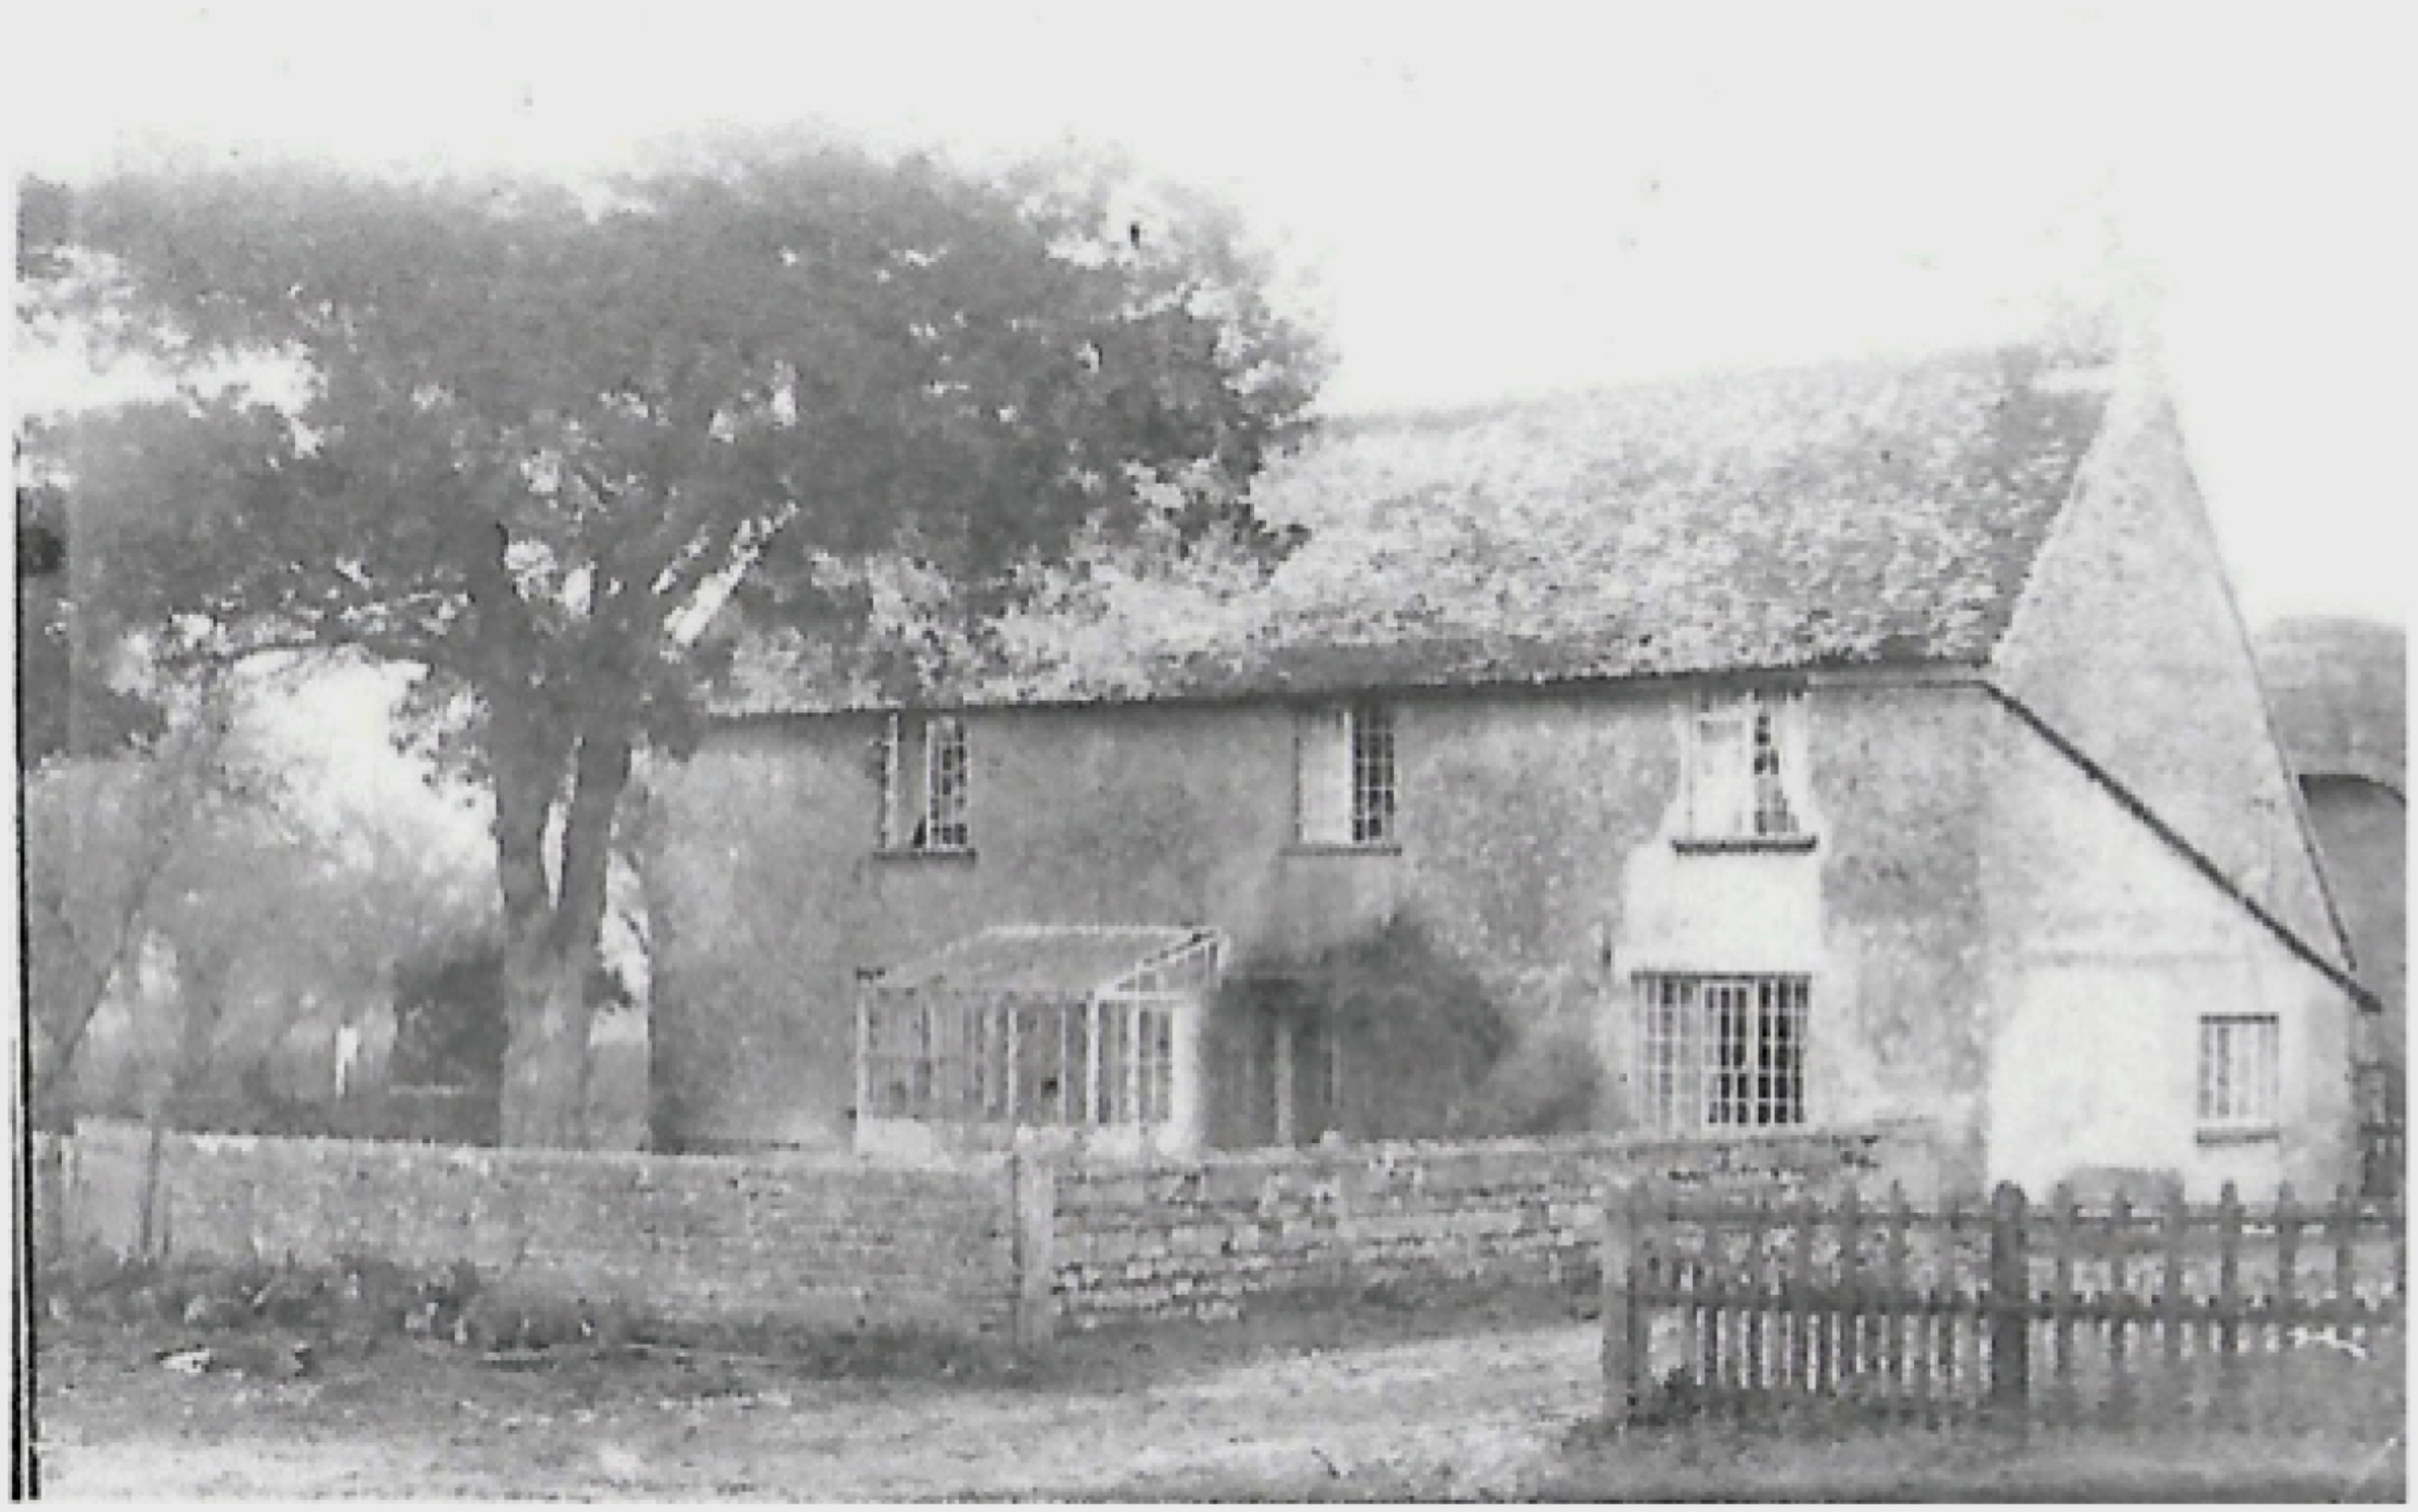 Blackven Farm House At The Beginning Of 20th Century